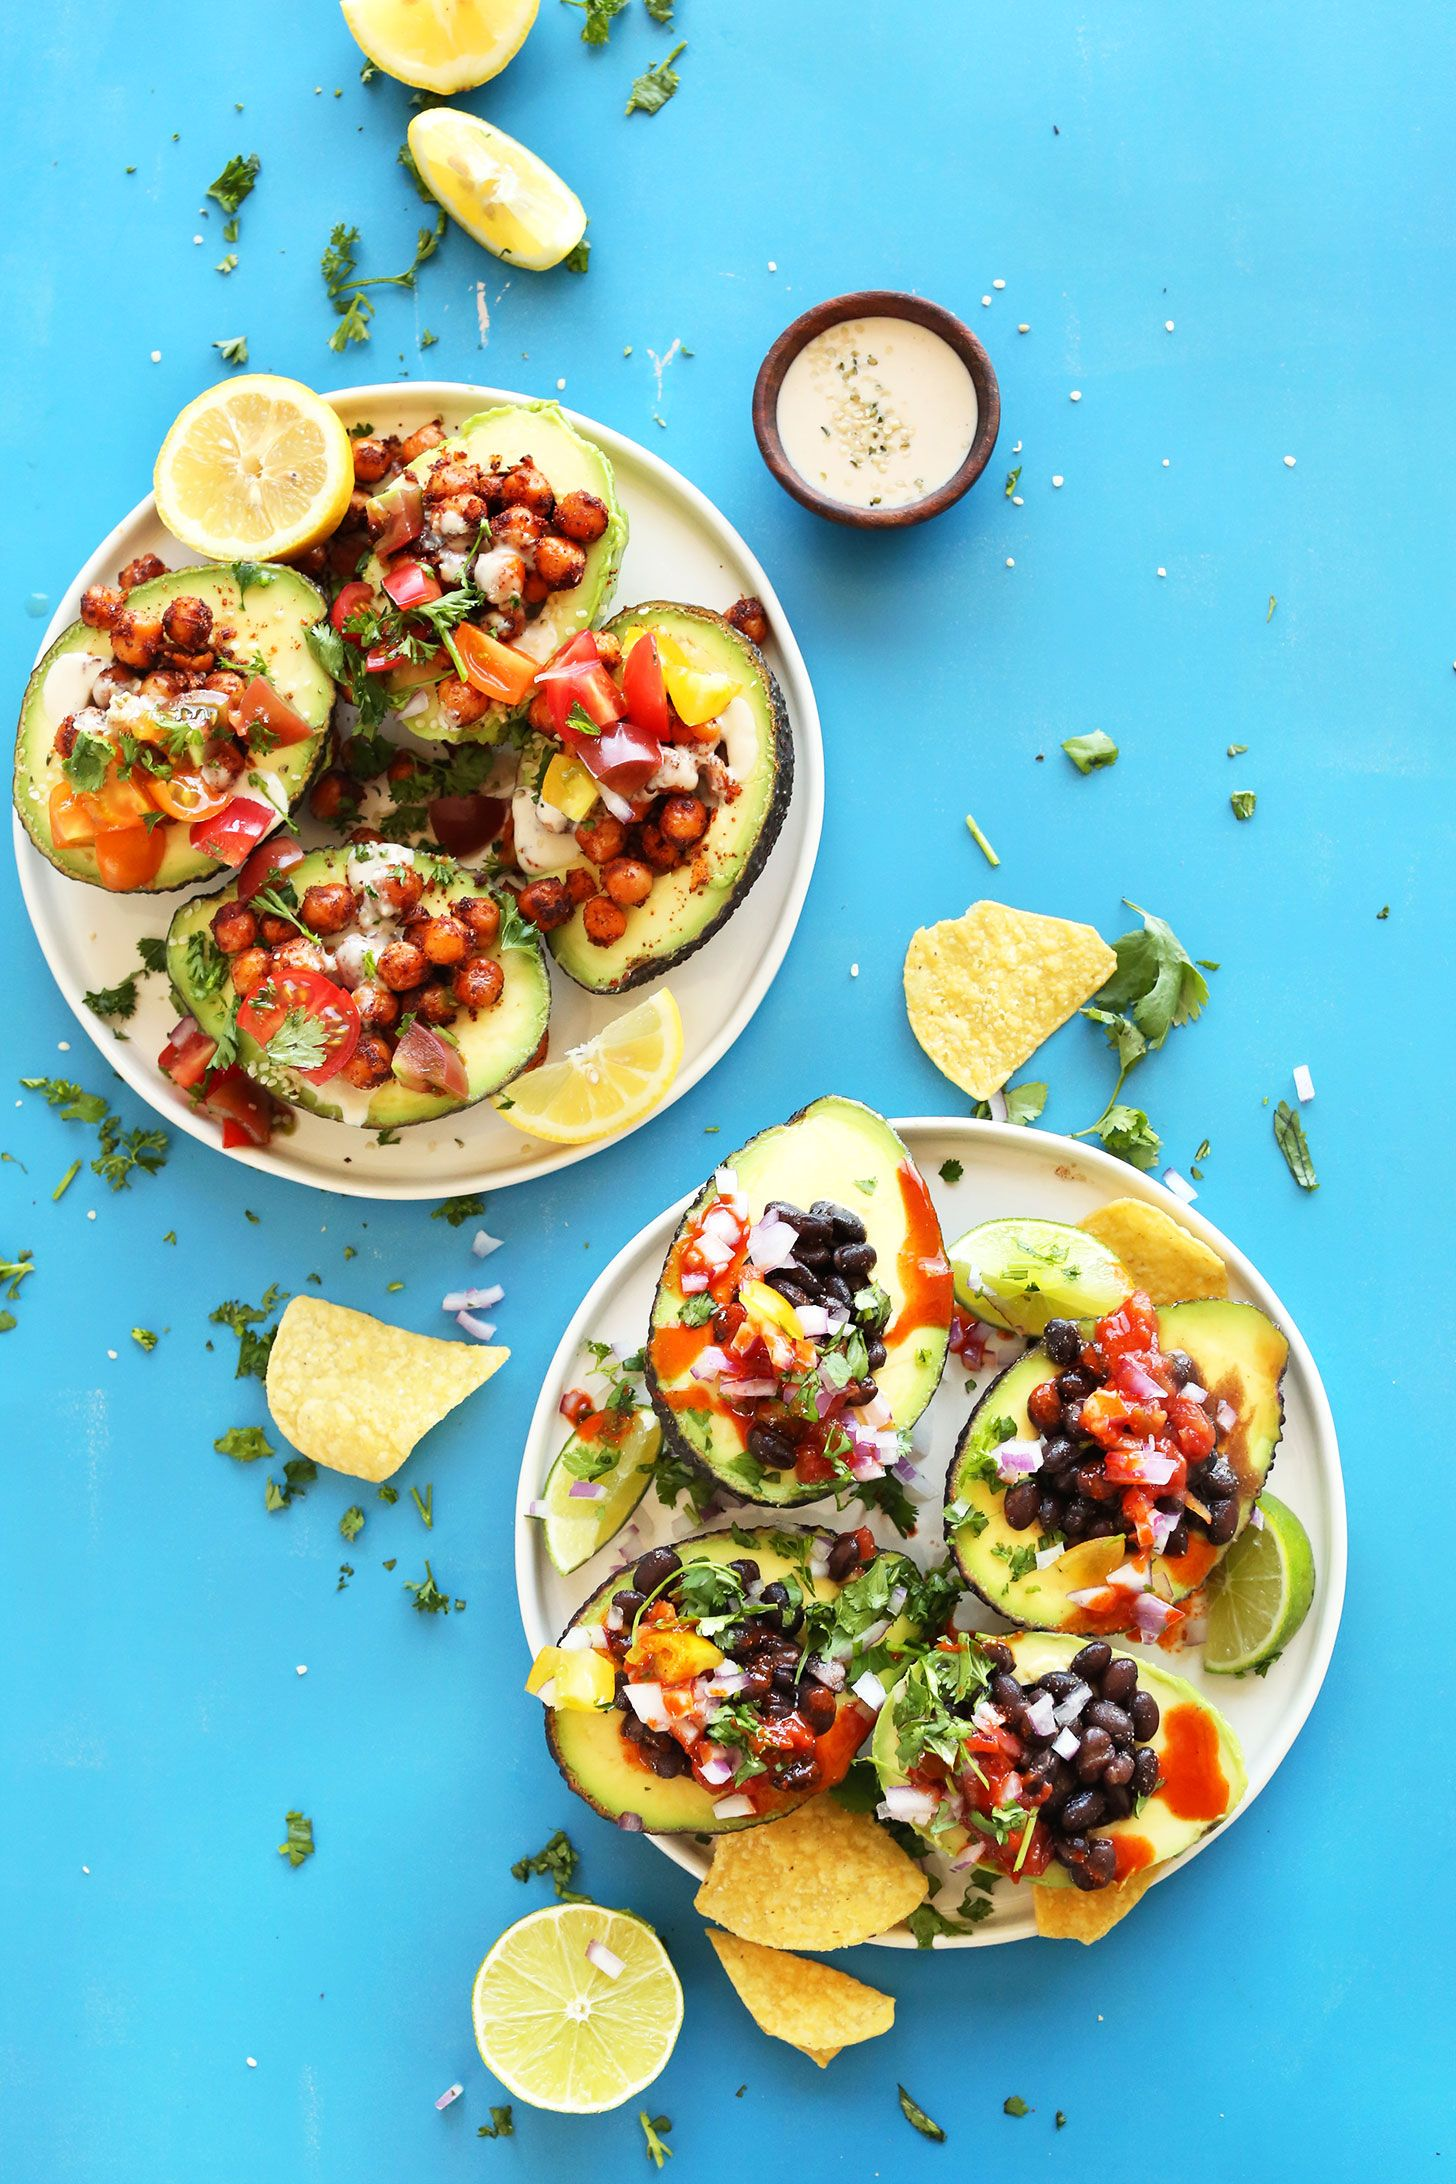 Avocado boats 2 ways recipe avocado boats plant based meals 30th simple 30 minute sisterspd